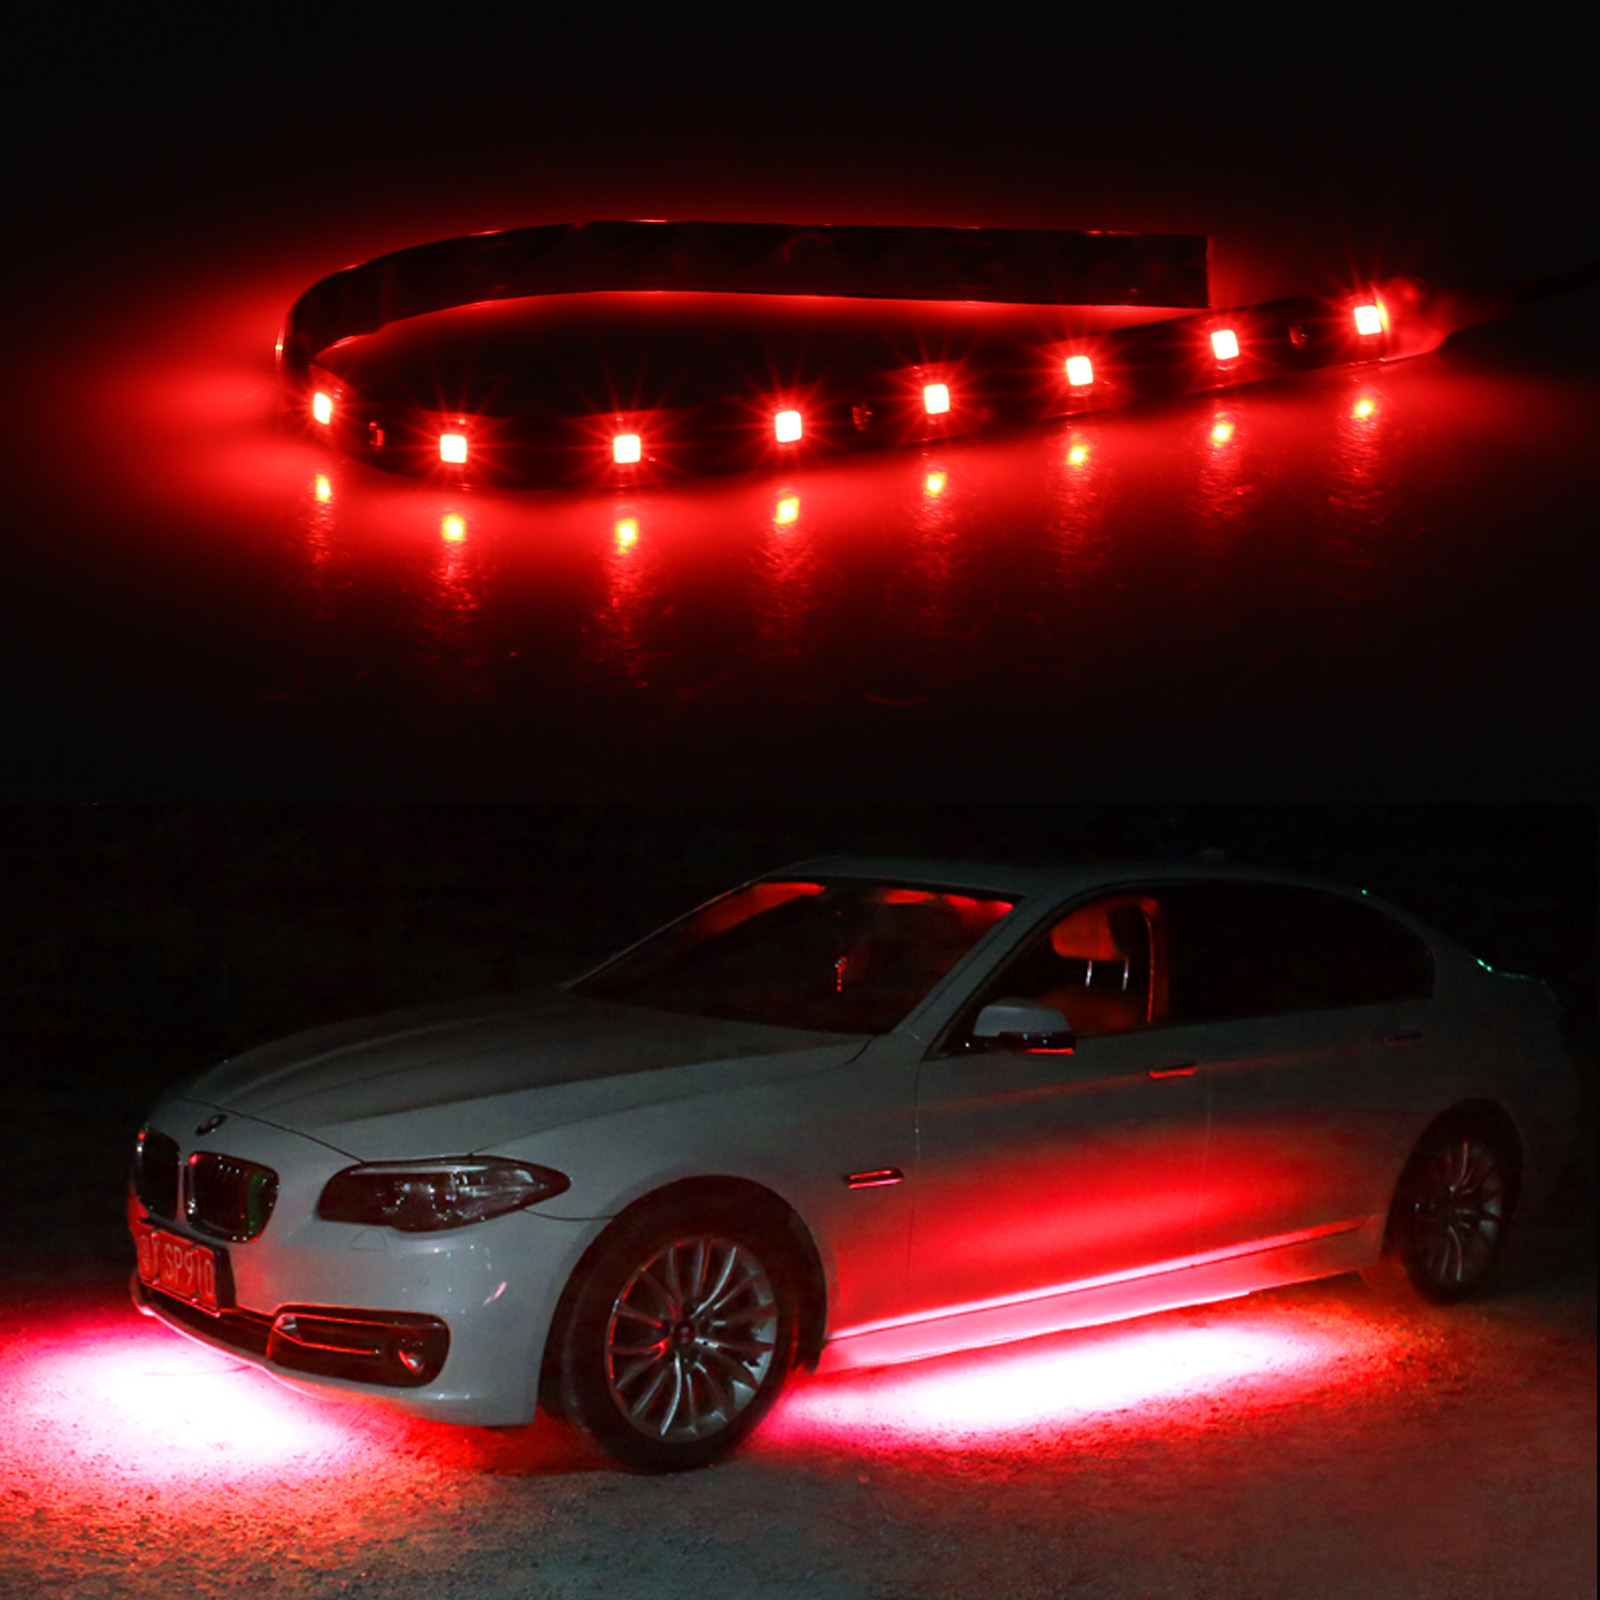 6-12-Pack-Waterproof-Flexible-DC12V-LED-Strip-Underbody-Light-for-Car-Motorcycle thumbnail 15